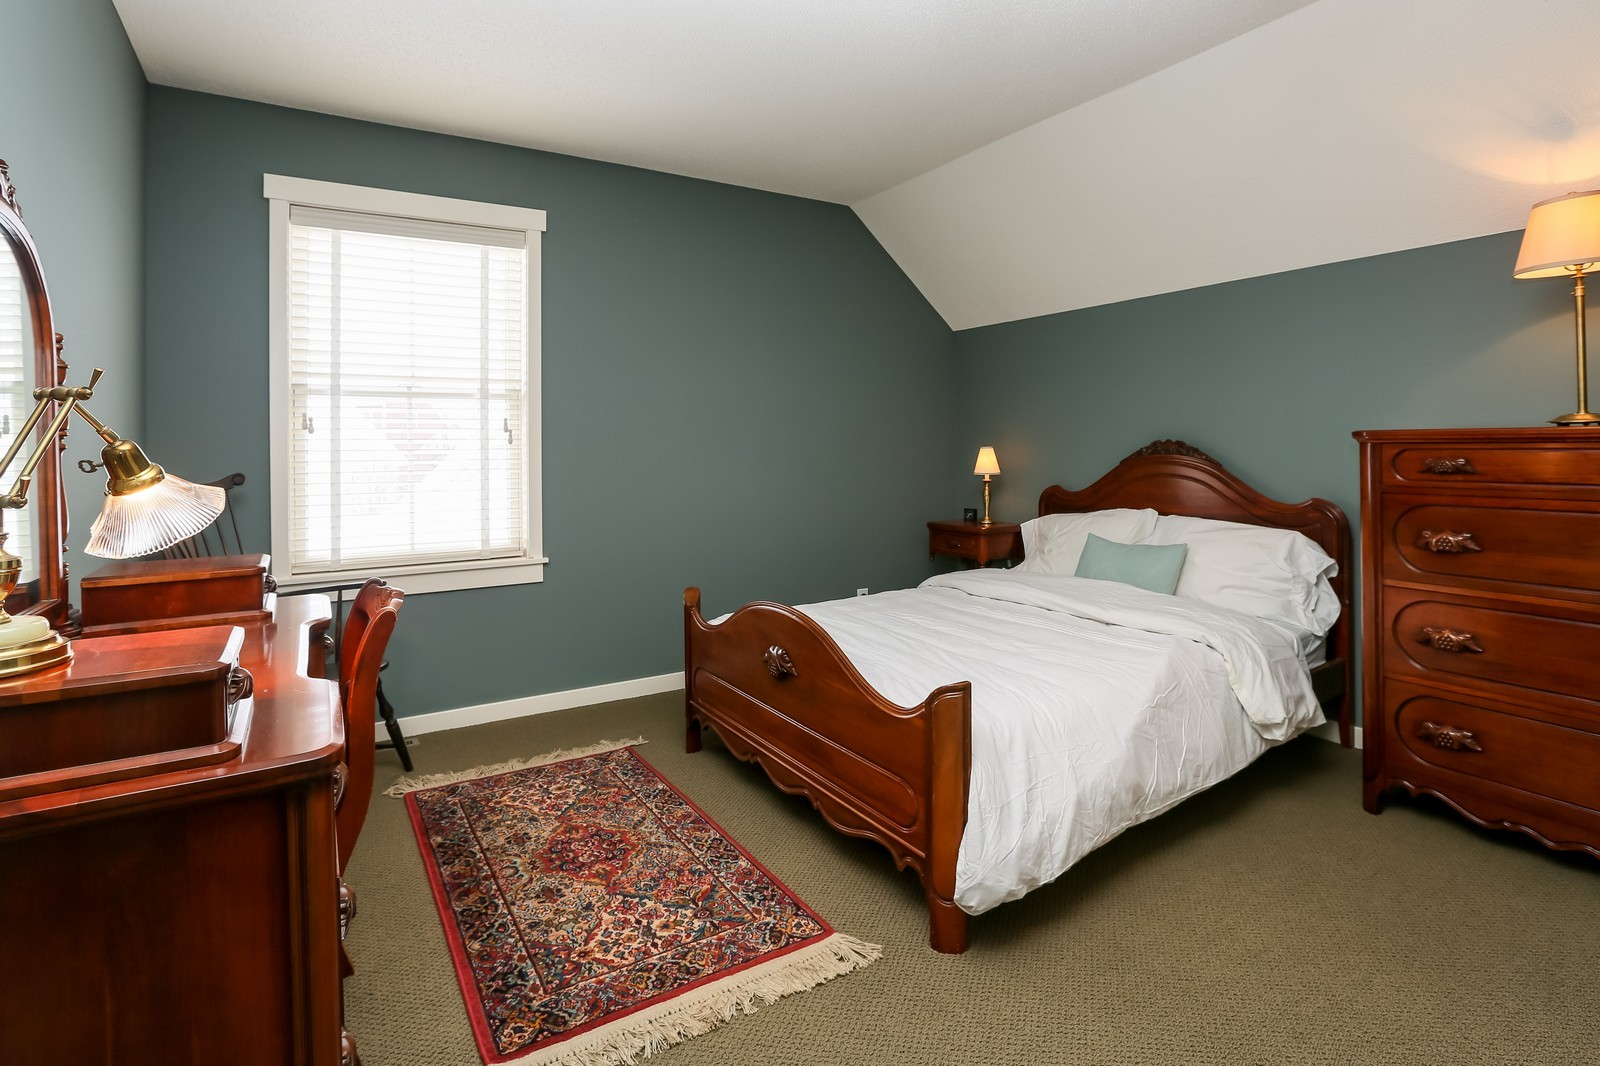 Real Estate Photography - 170 Rutherford Rd, Stillwater, MN, 55082 - 3rd Bedroom